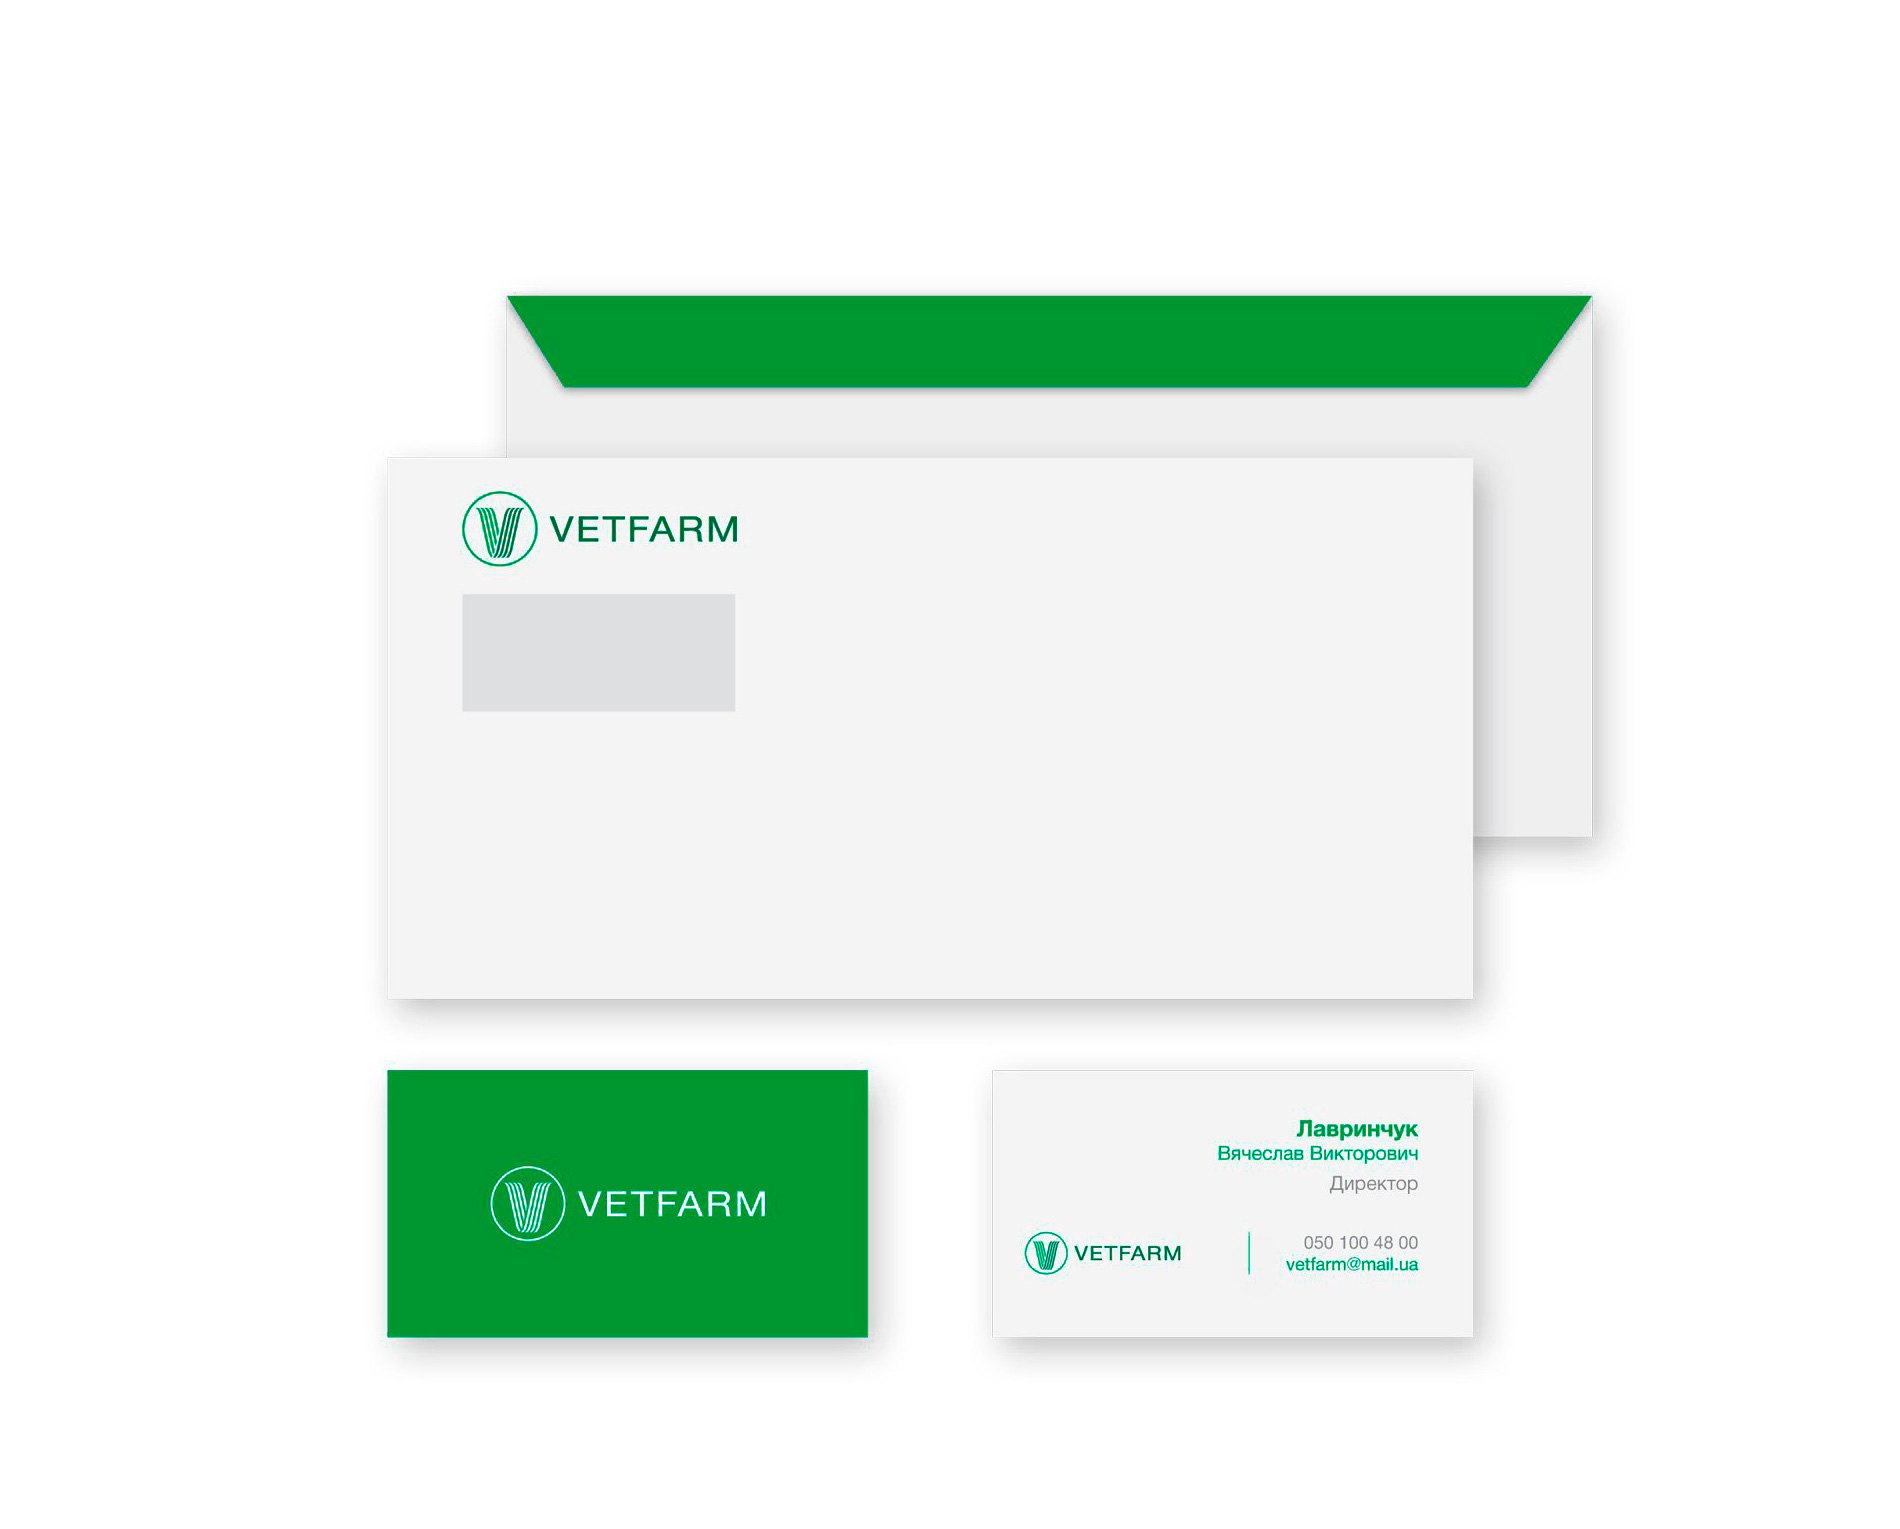 Logo design for Vetfarm company - manufacture, import and distribution of veterinary products portfolio